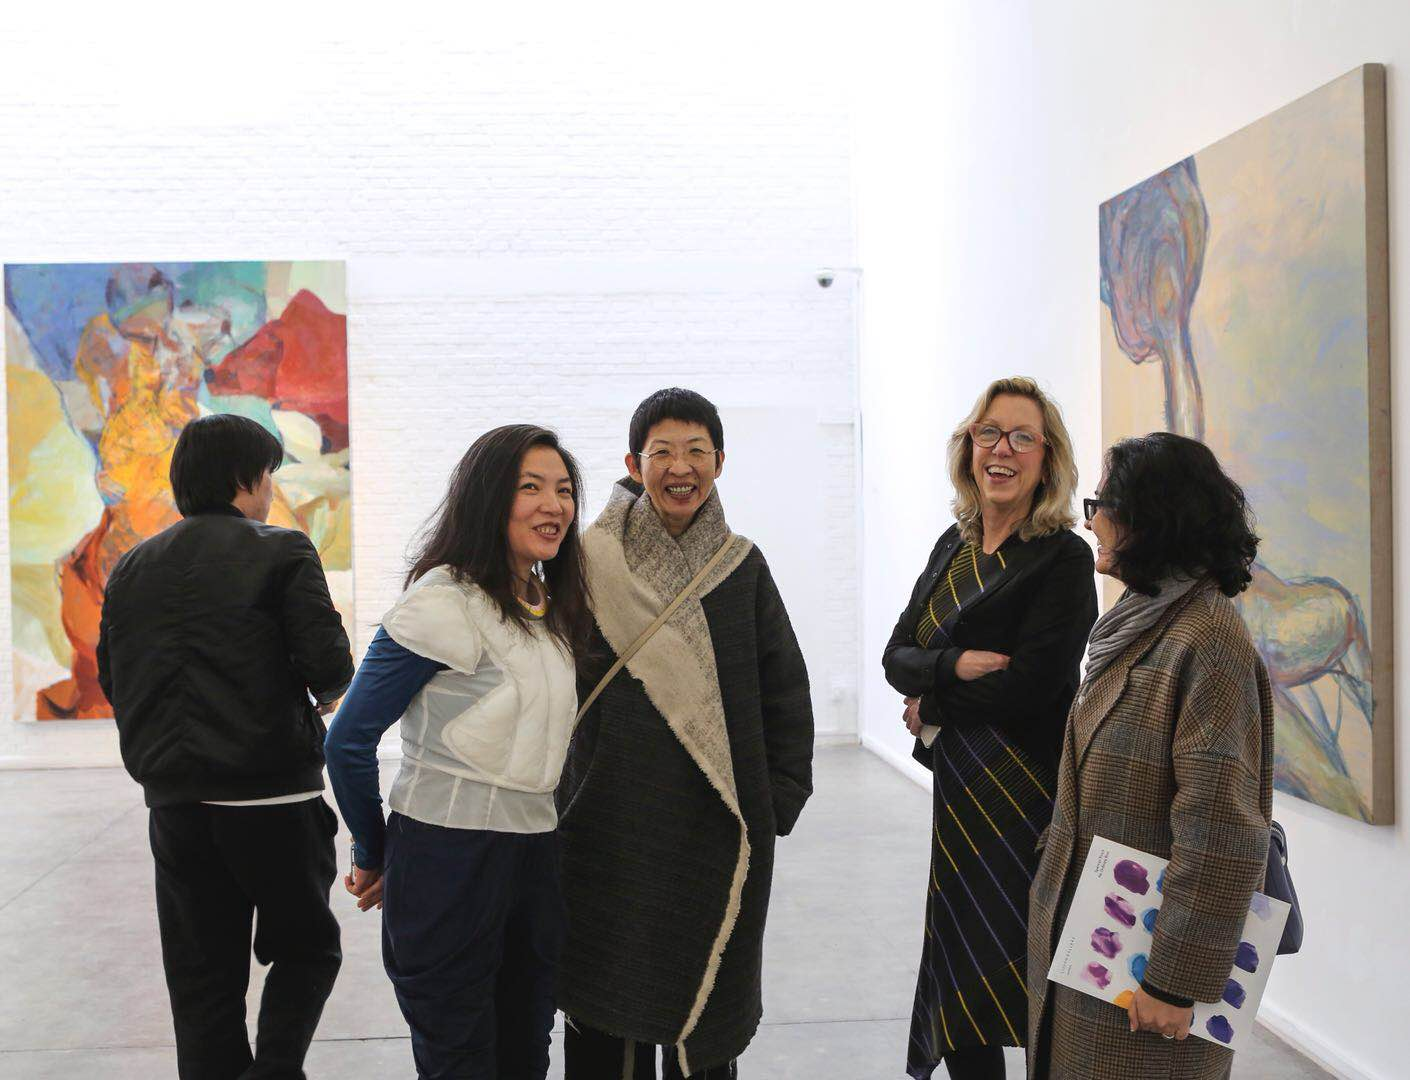 马芝安女士与北京艺门画廊观众交流。Ms. Meg Maggio (the second from the right) talked with visitors at Pékin Fine Arts.jpg